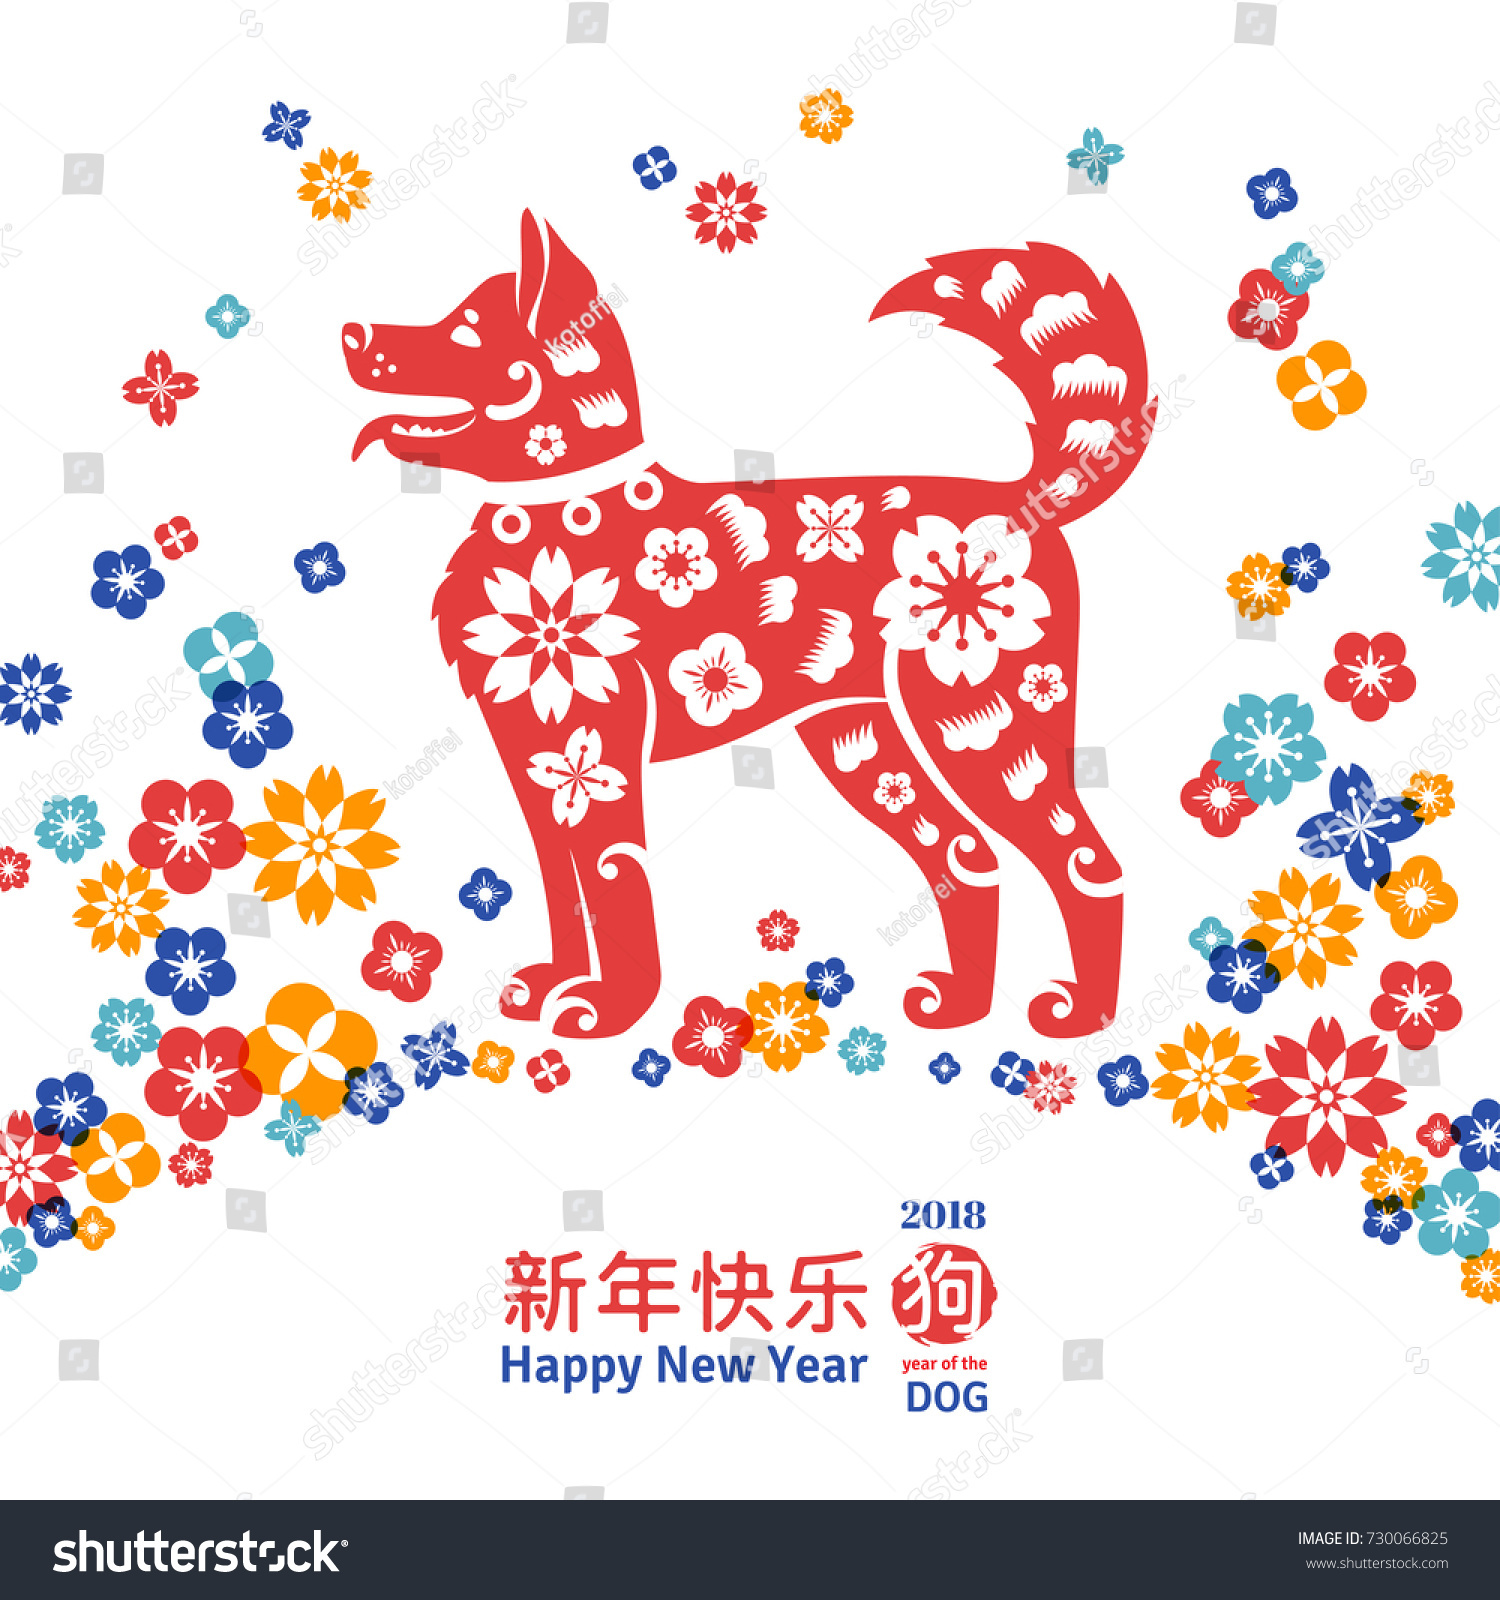 Chinese new year symbol 2018 year stock vector 730066825 shutterstock chinese new year symbol 2018 year of dog vector illustration zodiac sign in buycottarizona Gallery